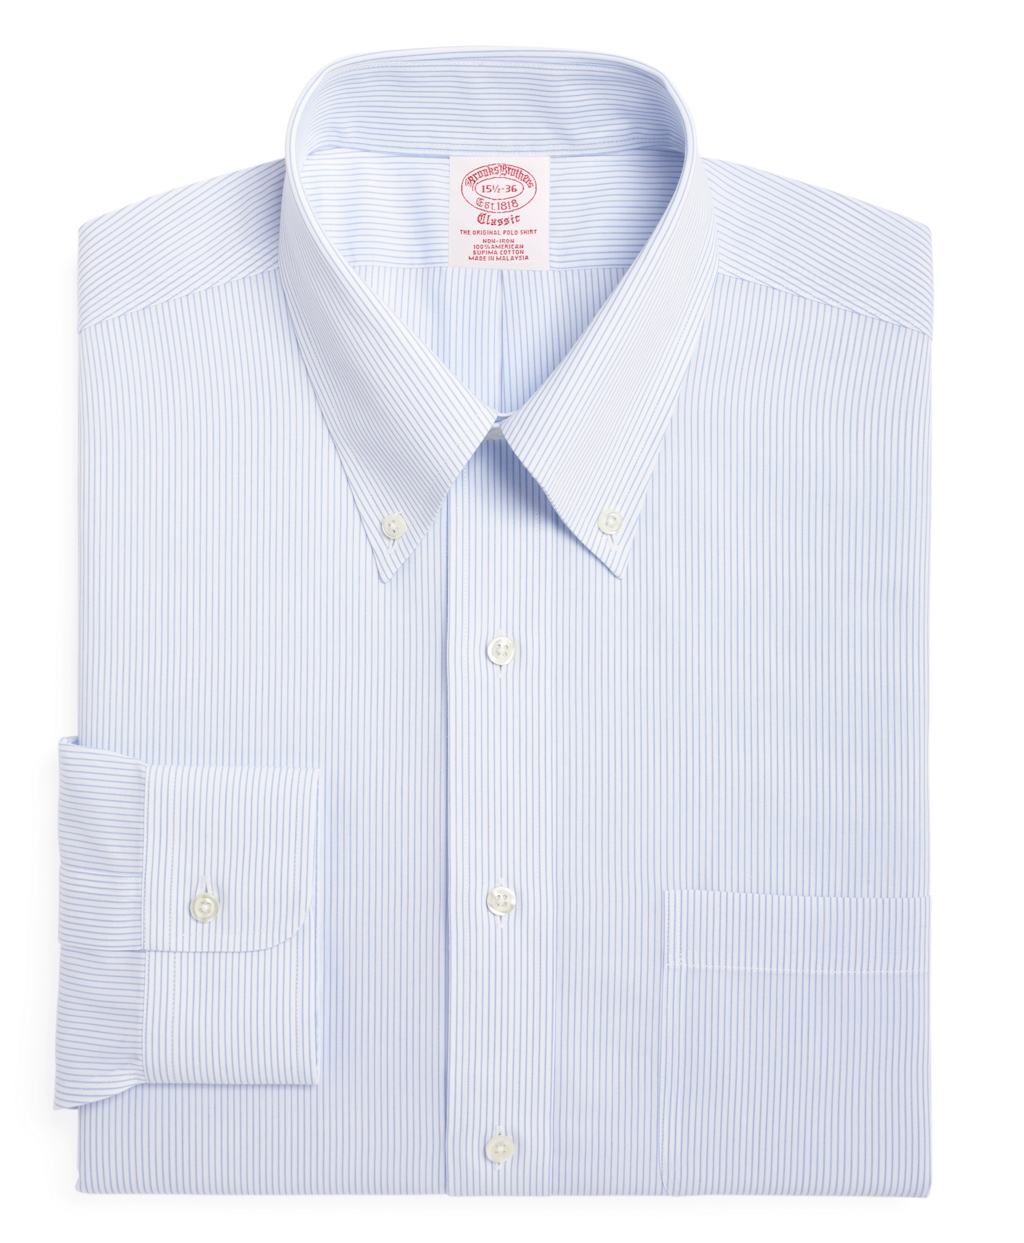 Brooks brothers non iron traditional fit mini pinstripe for Brooks brothers dress shirt fit